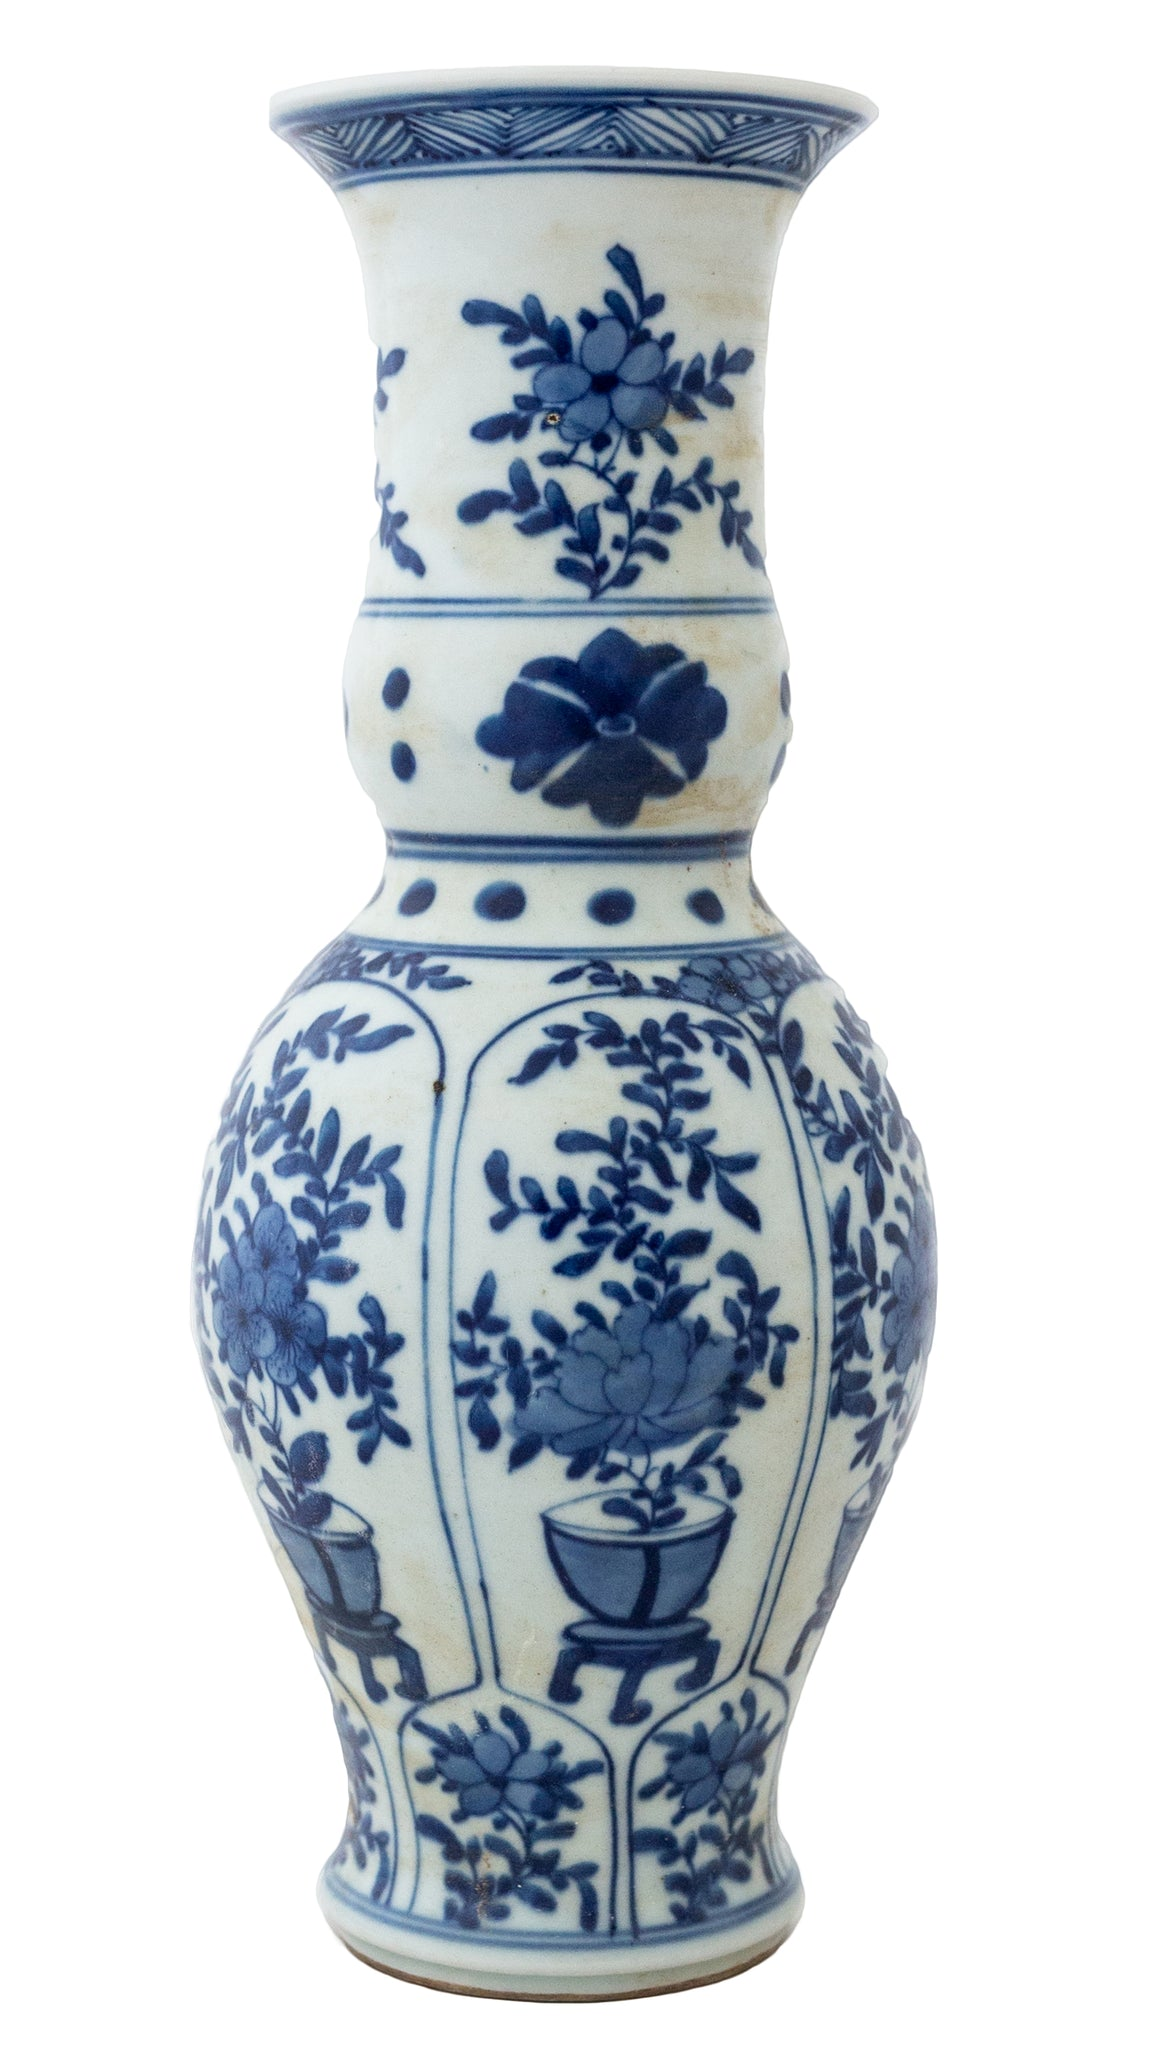 Blue And White Floral Vase - Amy Berry Home